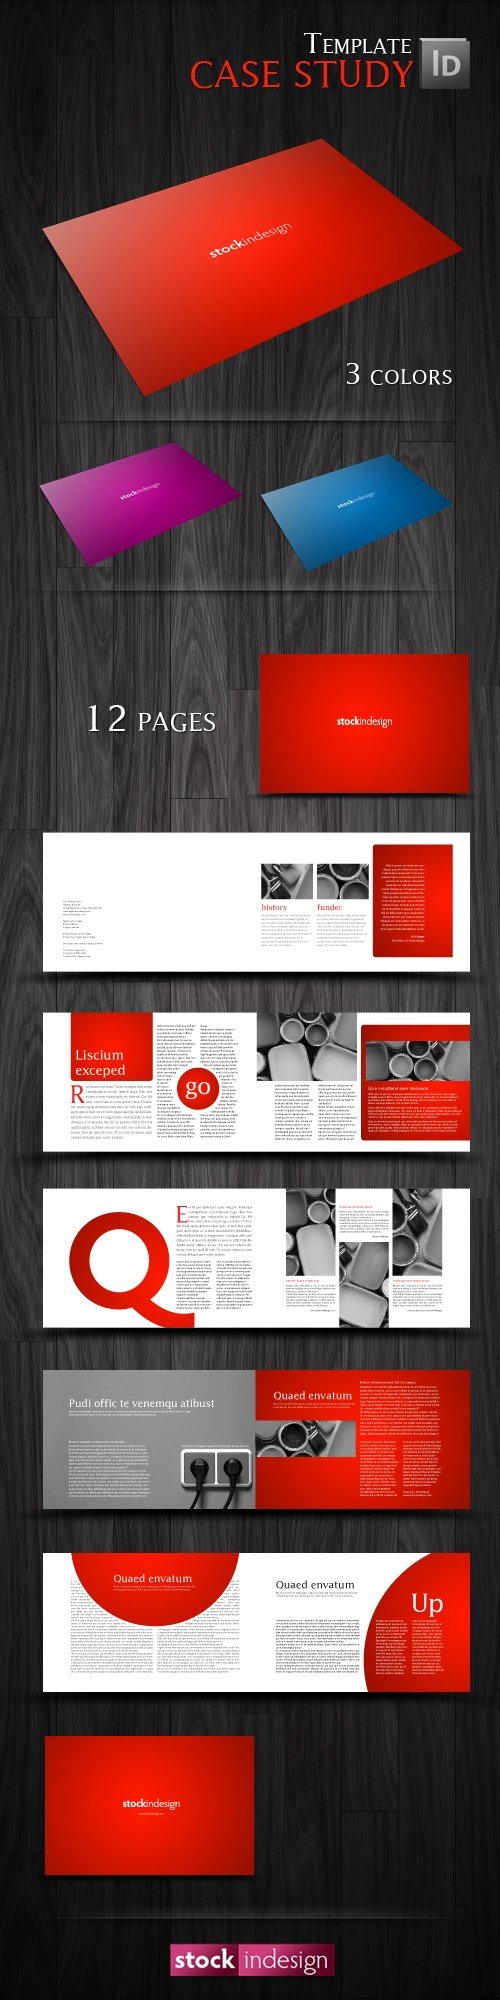 Free Travel Brochure Templates & Examples - Lucidpress